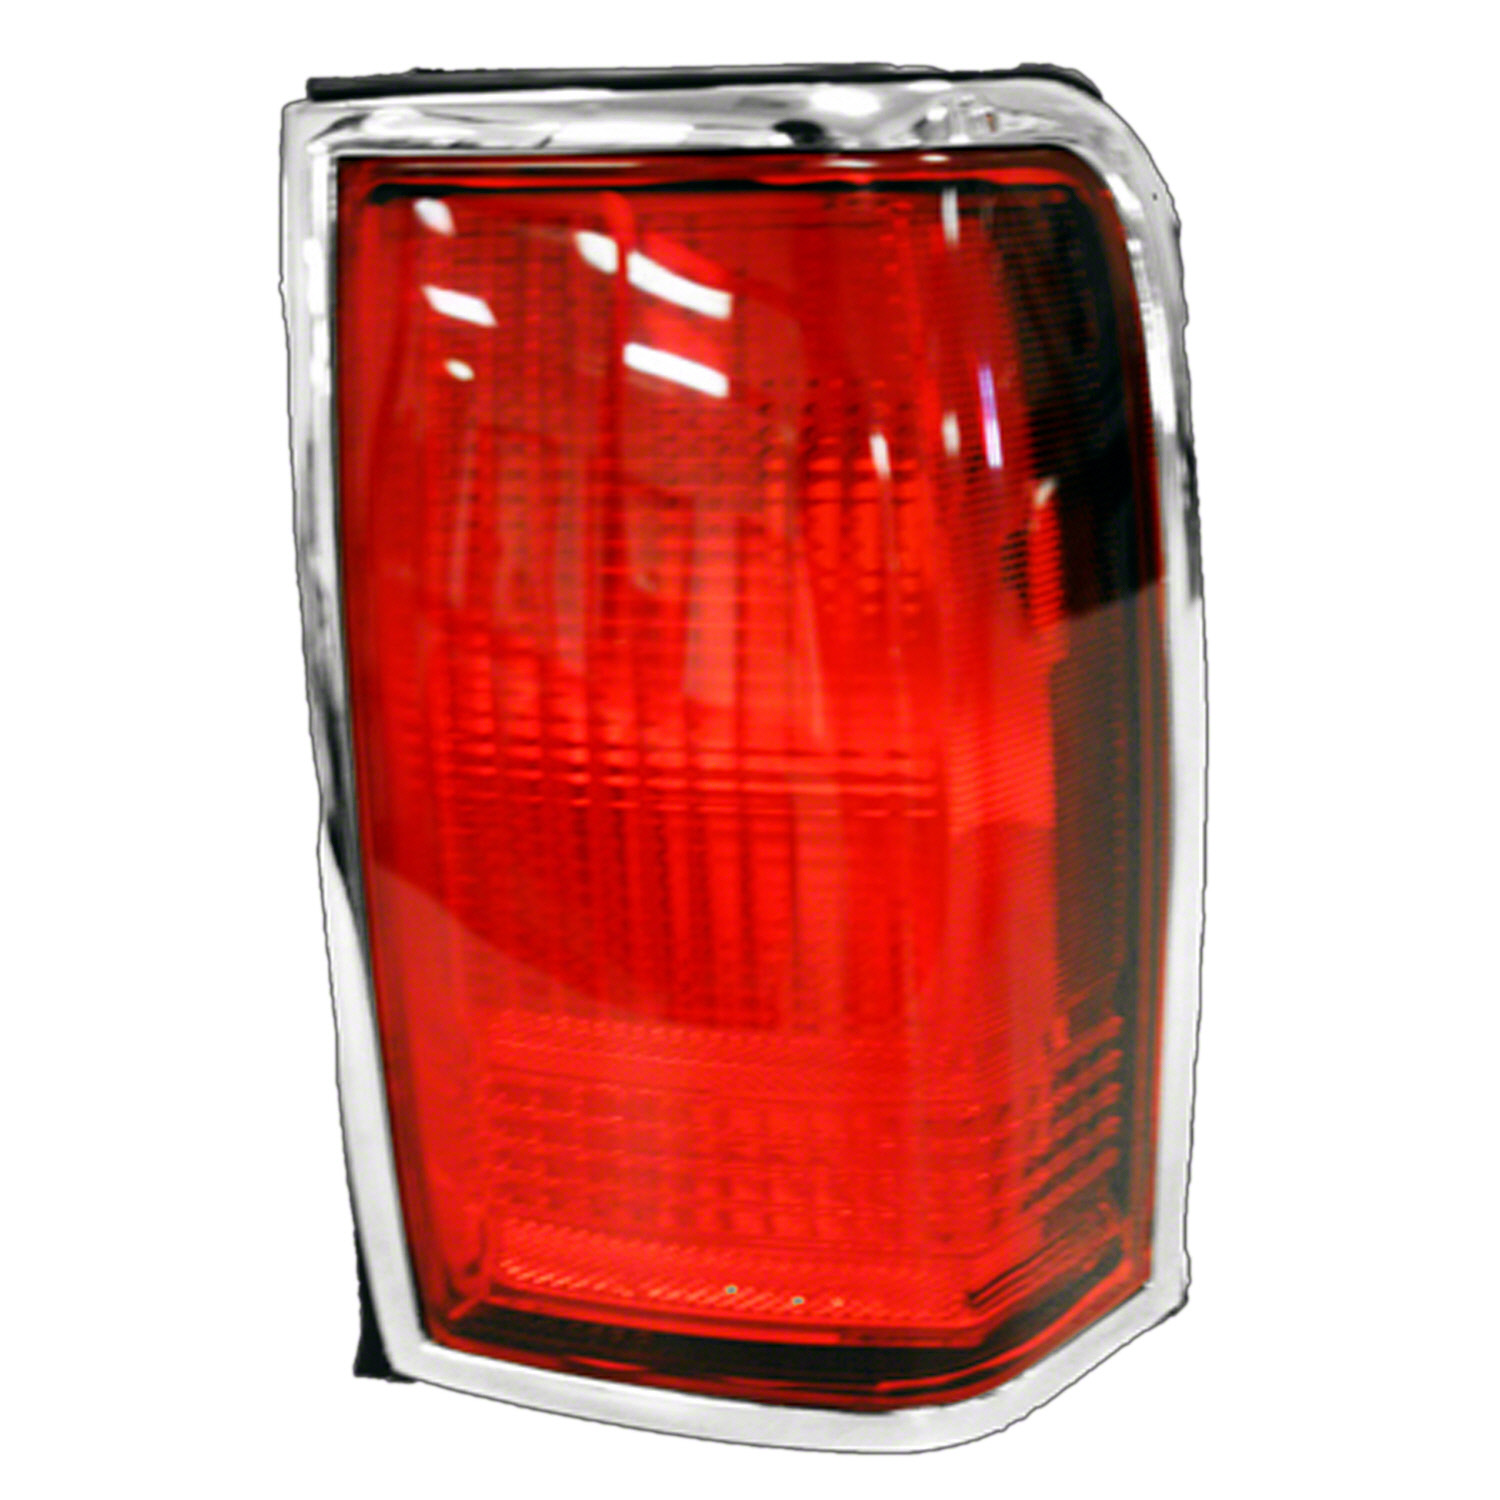 hight resolution of 1990 1997 lincoln town car passenger side right tail lamp lens and housing f5vy13404a v walmart com